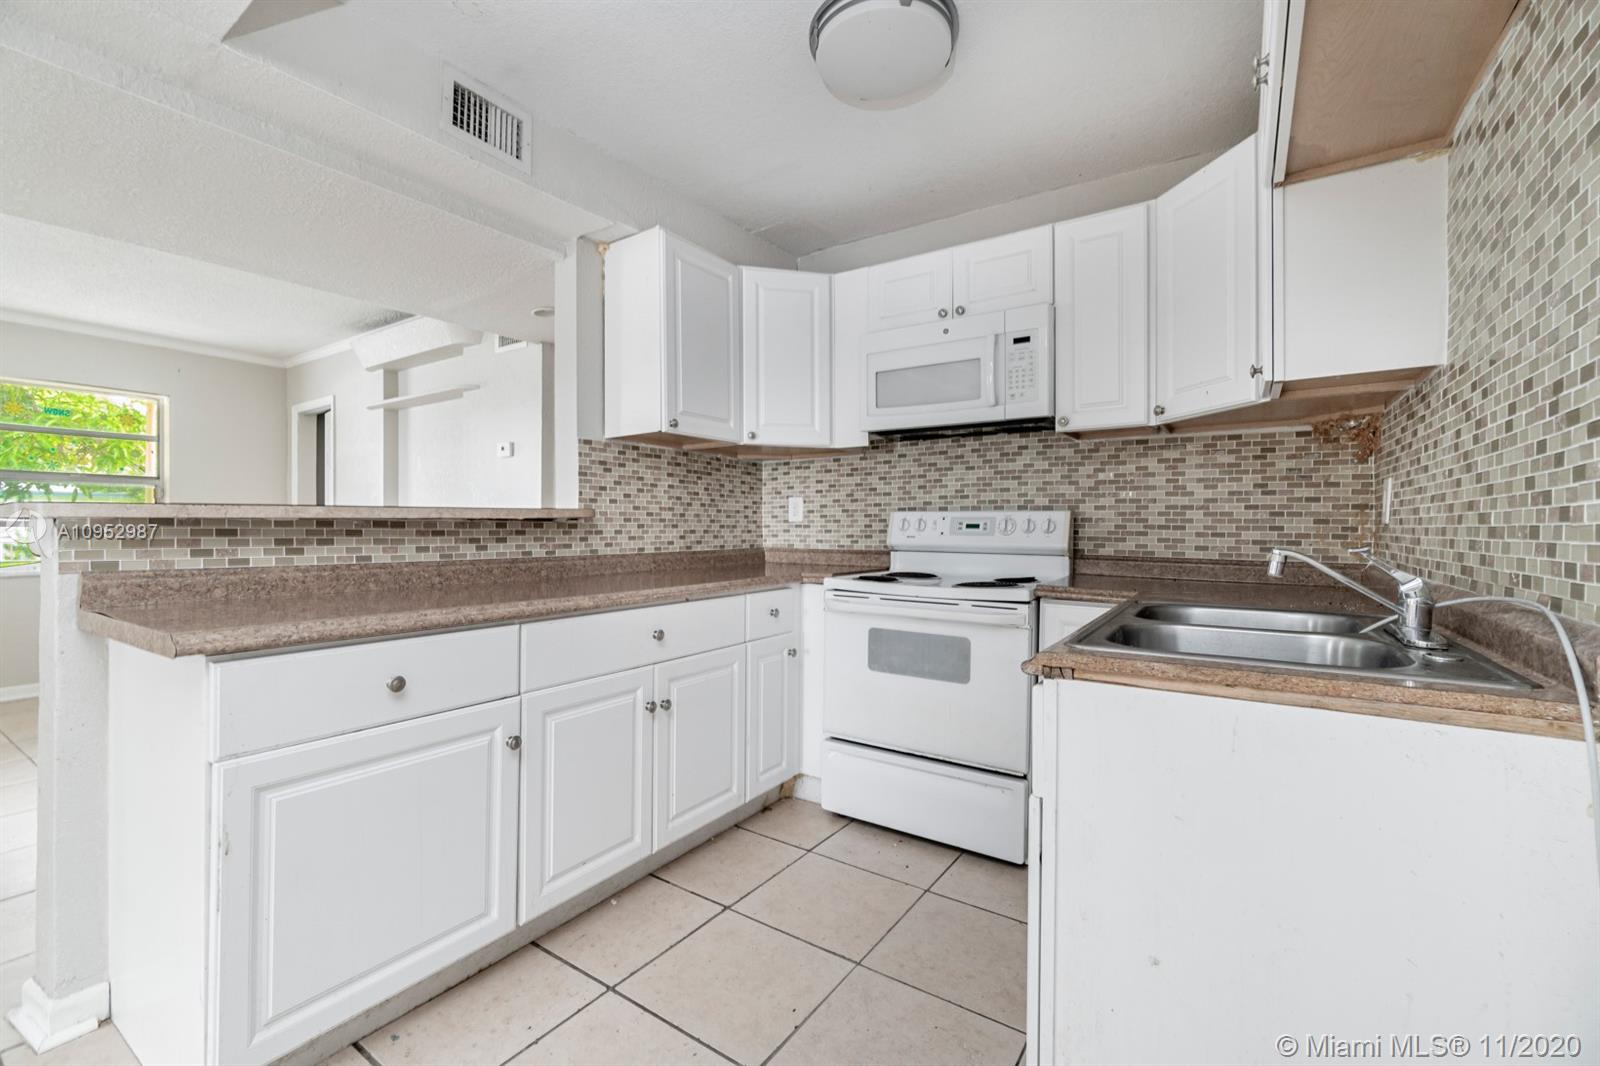 Remodeled 5/2 is ready for your personal touch! Property features ceramic tile floors, redone kitchen (tile backsplash, granite counters, new cabinets and appliances), updates in baths, laundry room, spacious lot with mature trees and so much more. Make this your home or investment today!